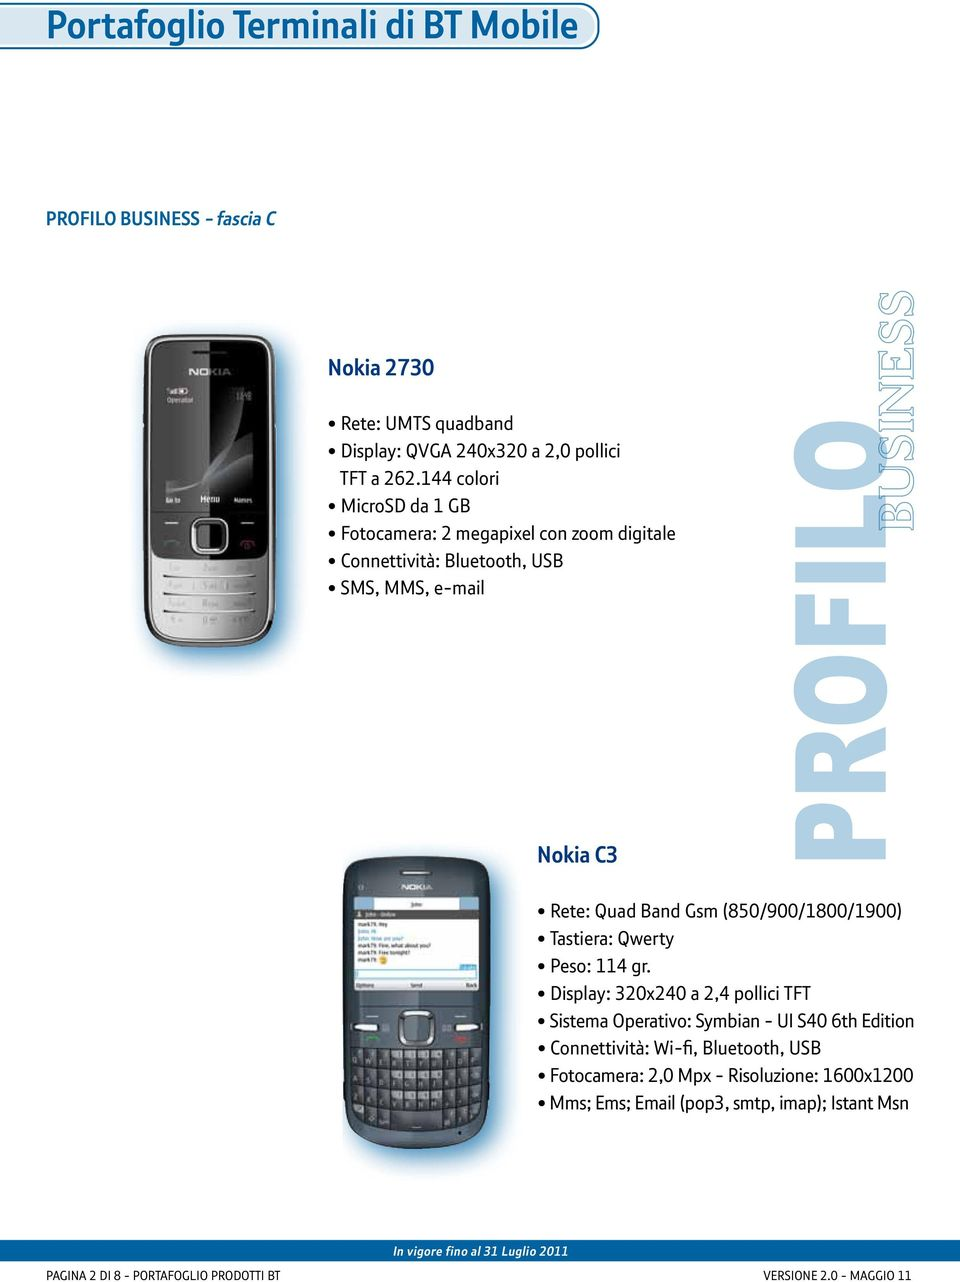 Quad Band Gsm (850/900/1800/1900) Tastiera: Qwerty Peso: 114 gr.